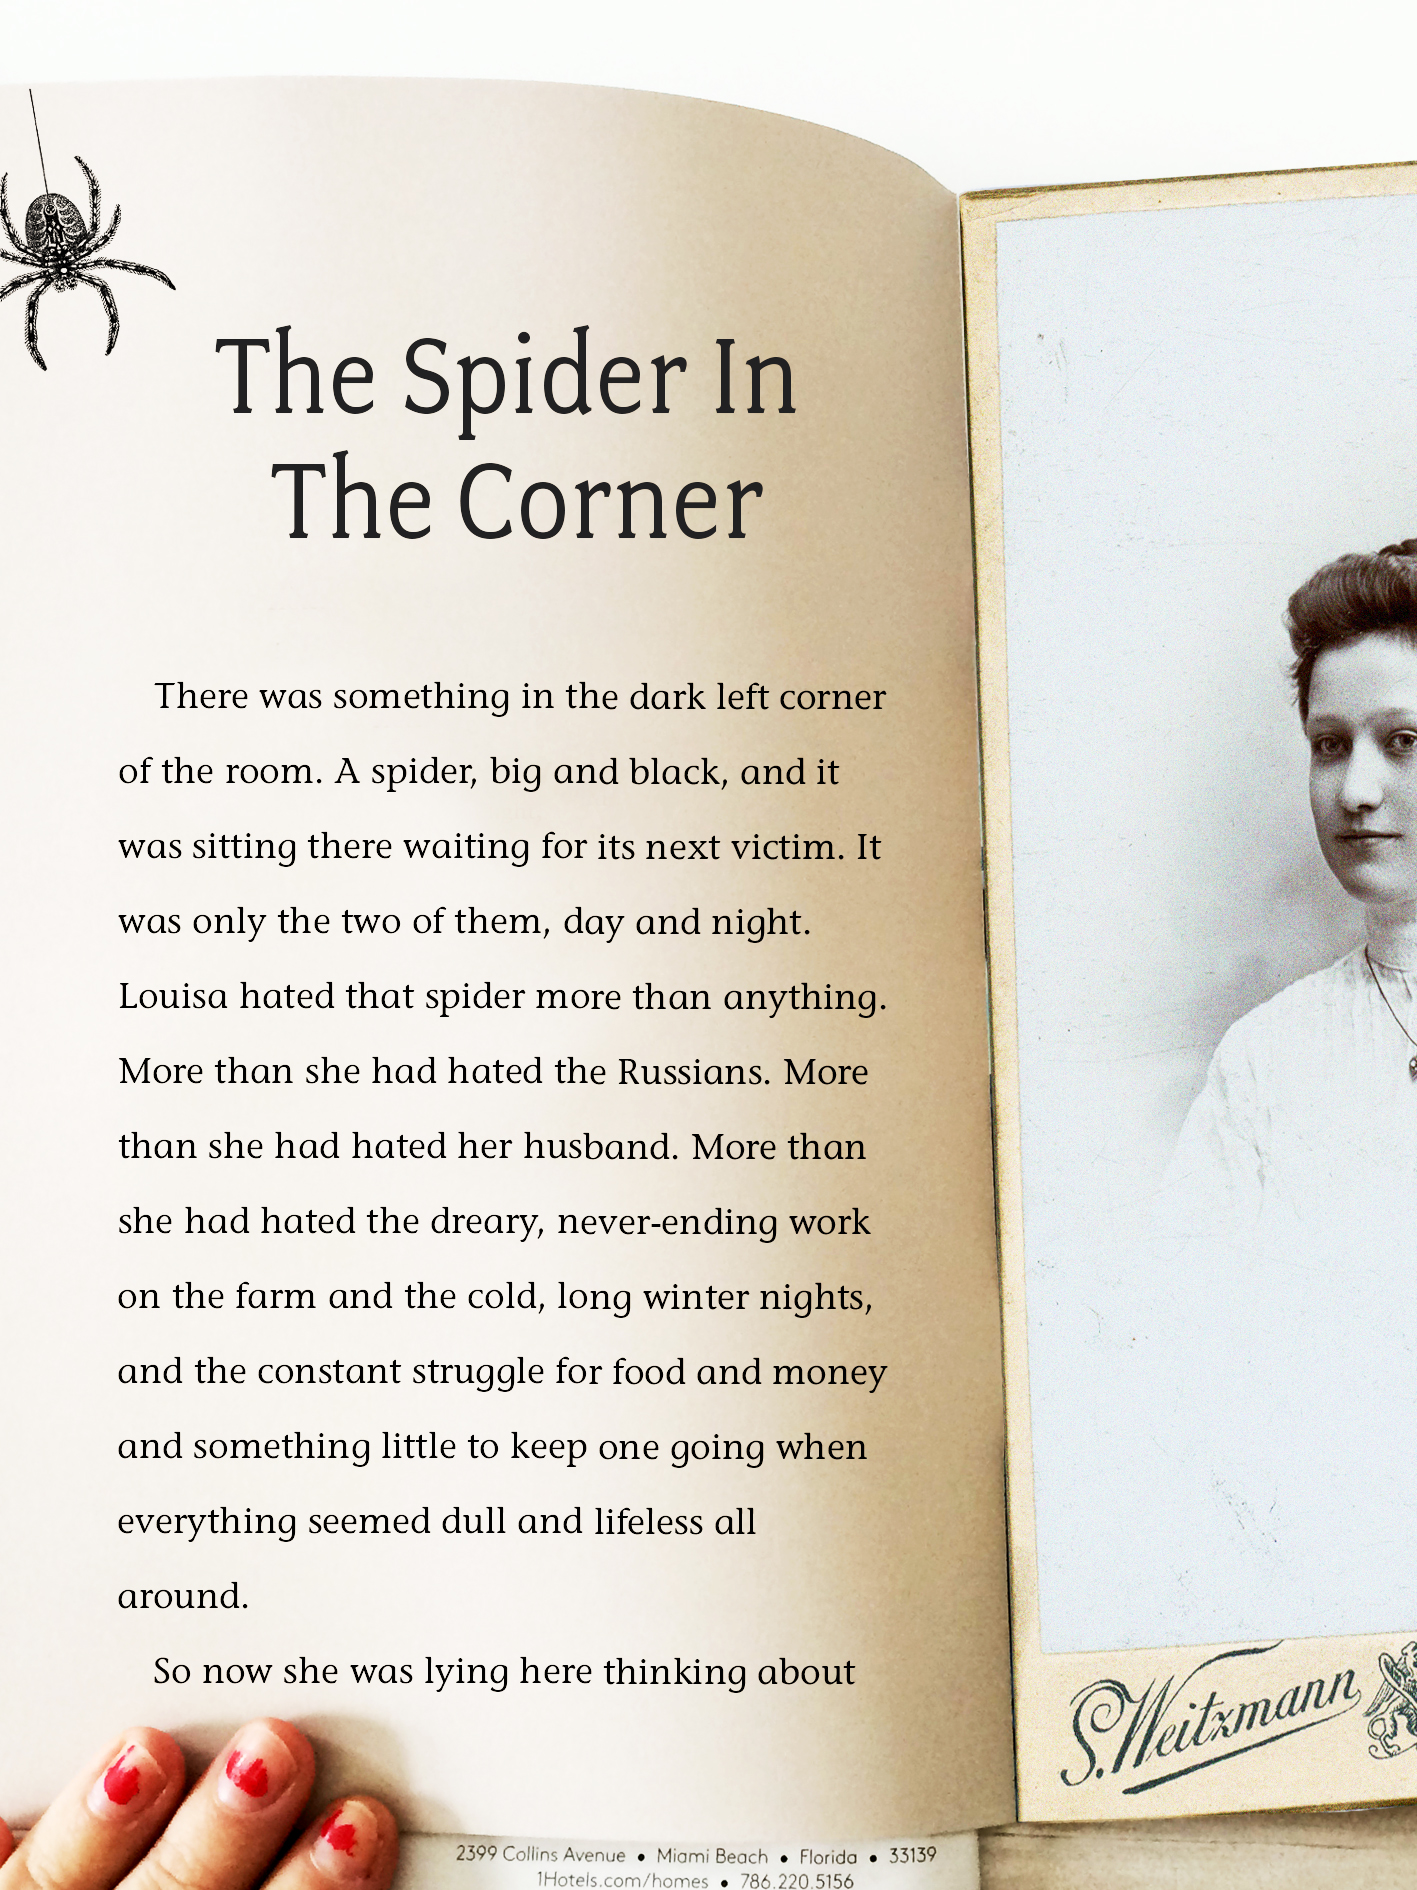 The Spider in the Corner - A dying woman changes her life after discovering a spider hiding in a corner.